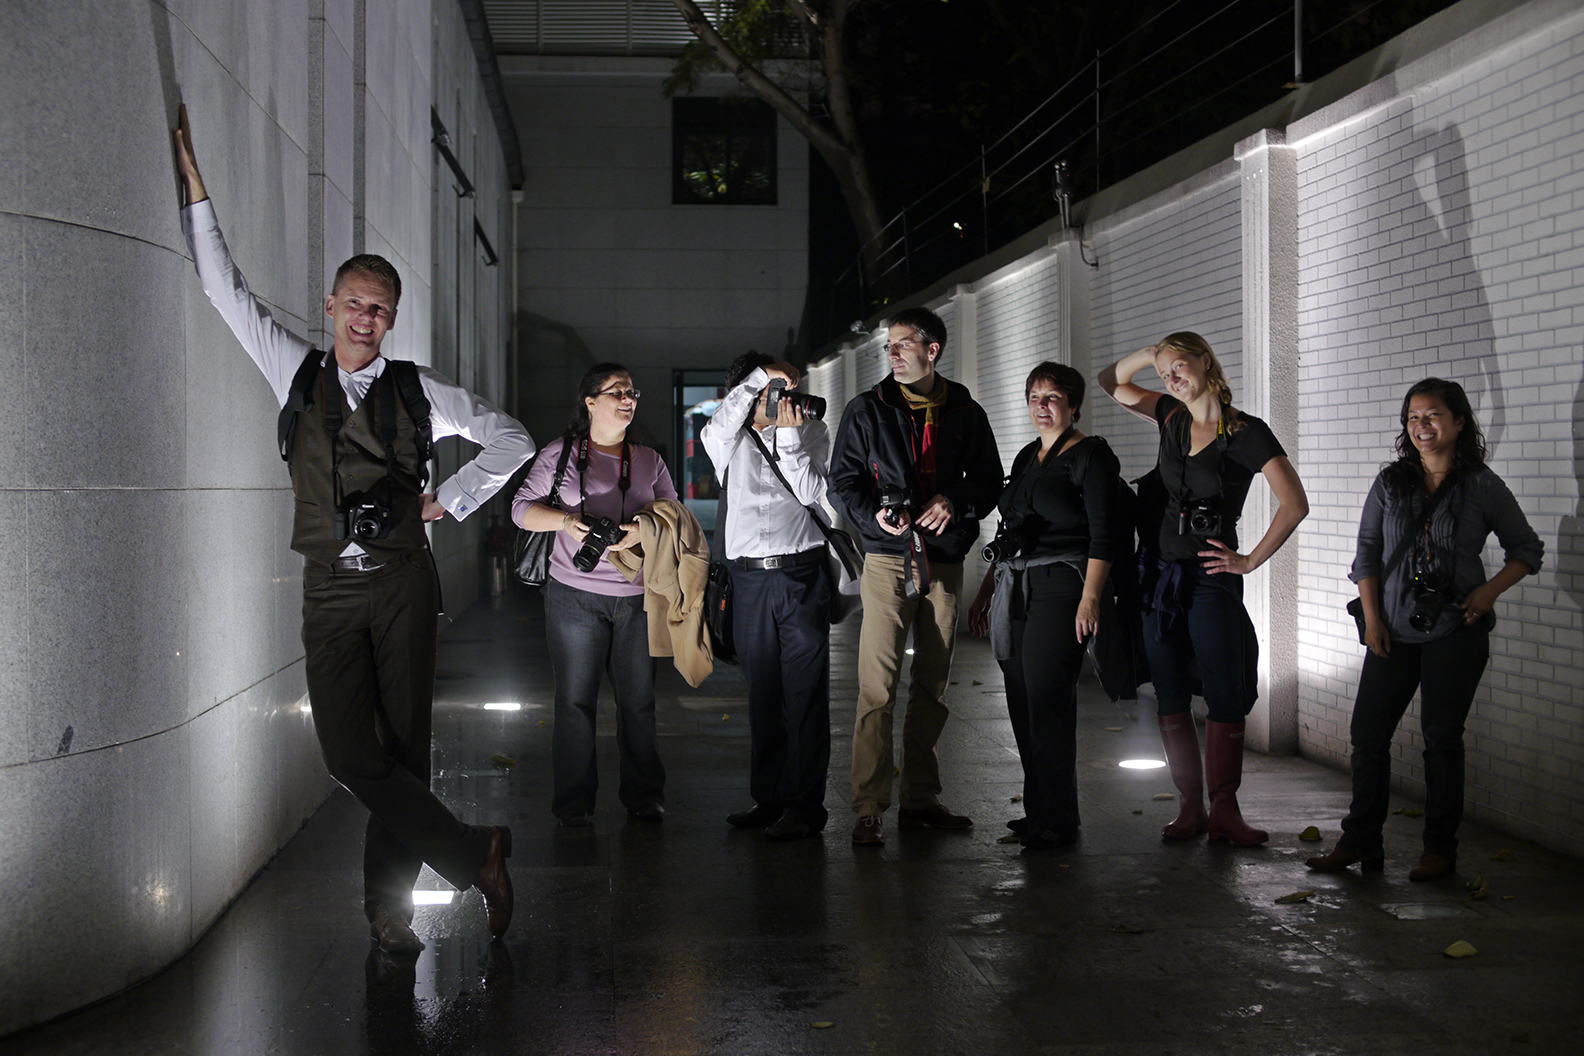 Franc can organize a photography class for any group of people with night shooting as a topic for example.